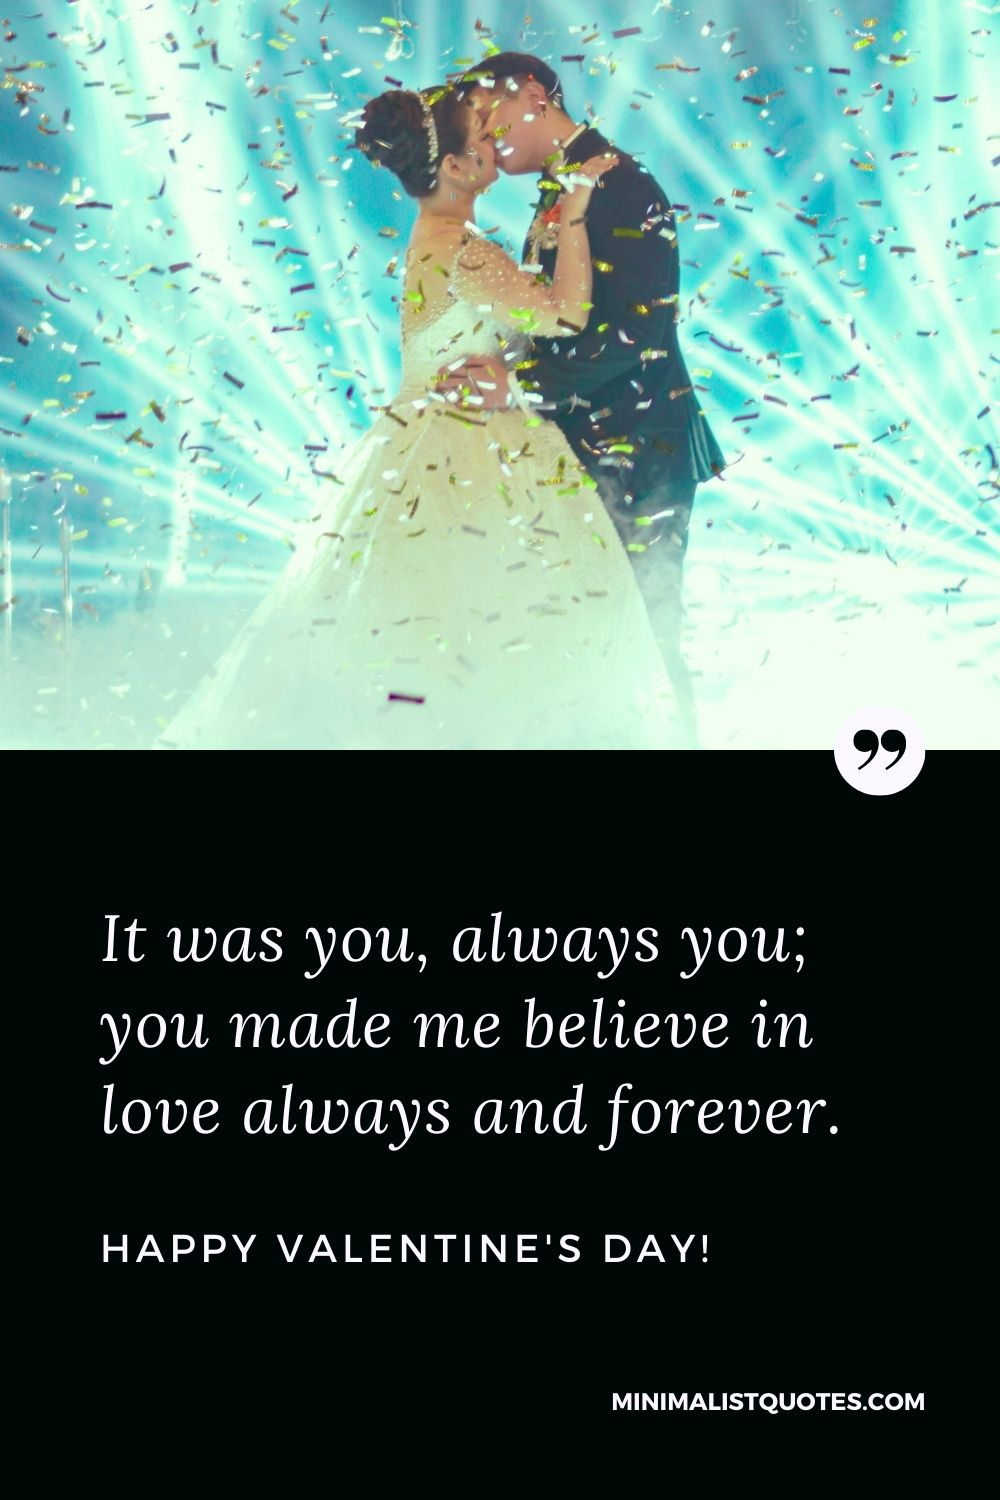 Valentine's Day Quote, Wish & Message With Image: It was you, always you; you made me believe in love always and forever. Happy Valentines Day!